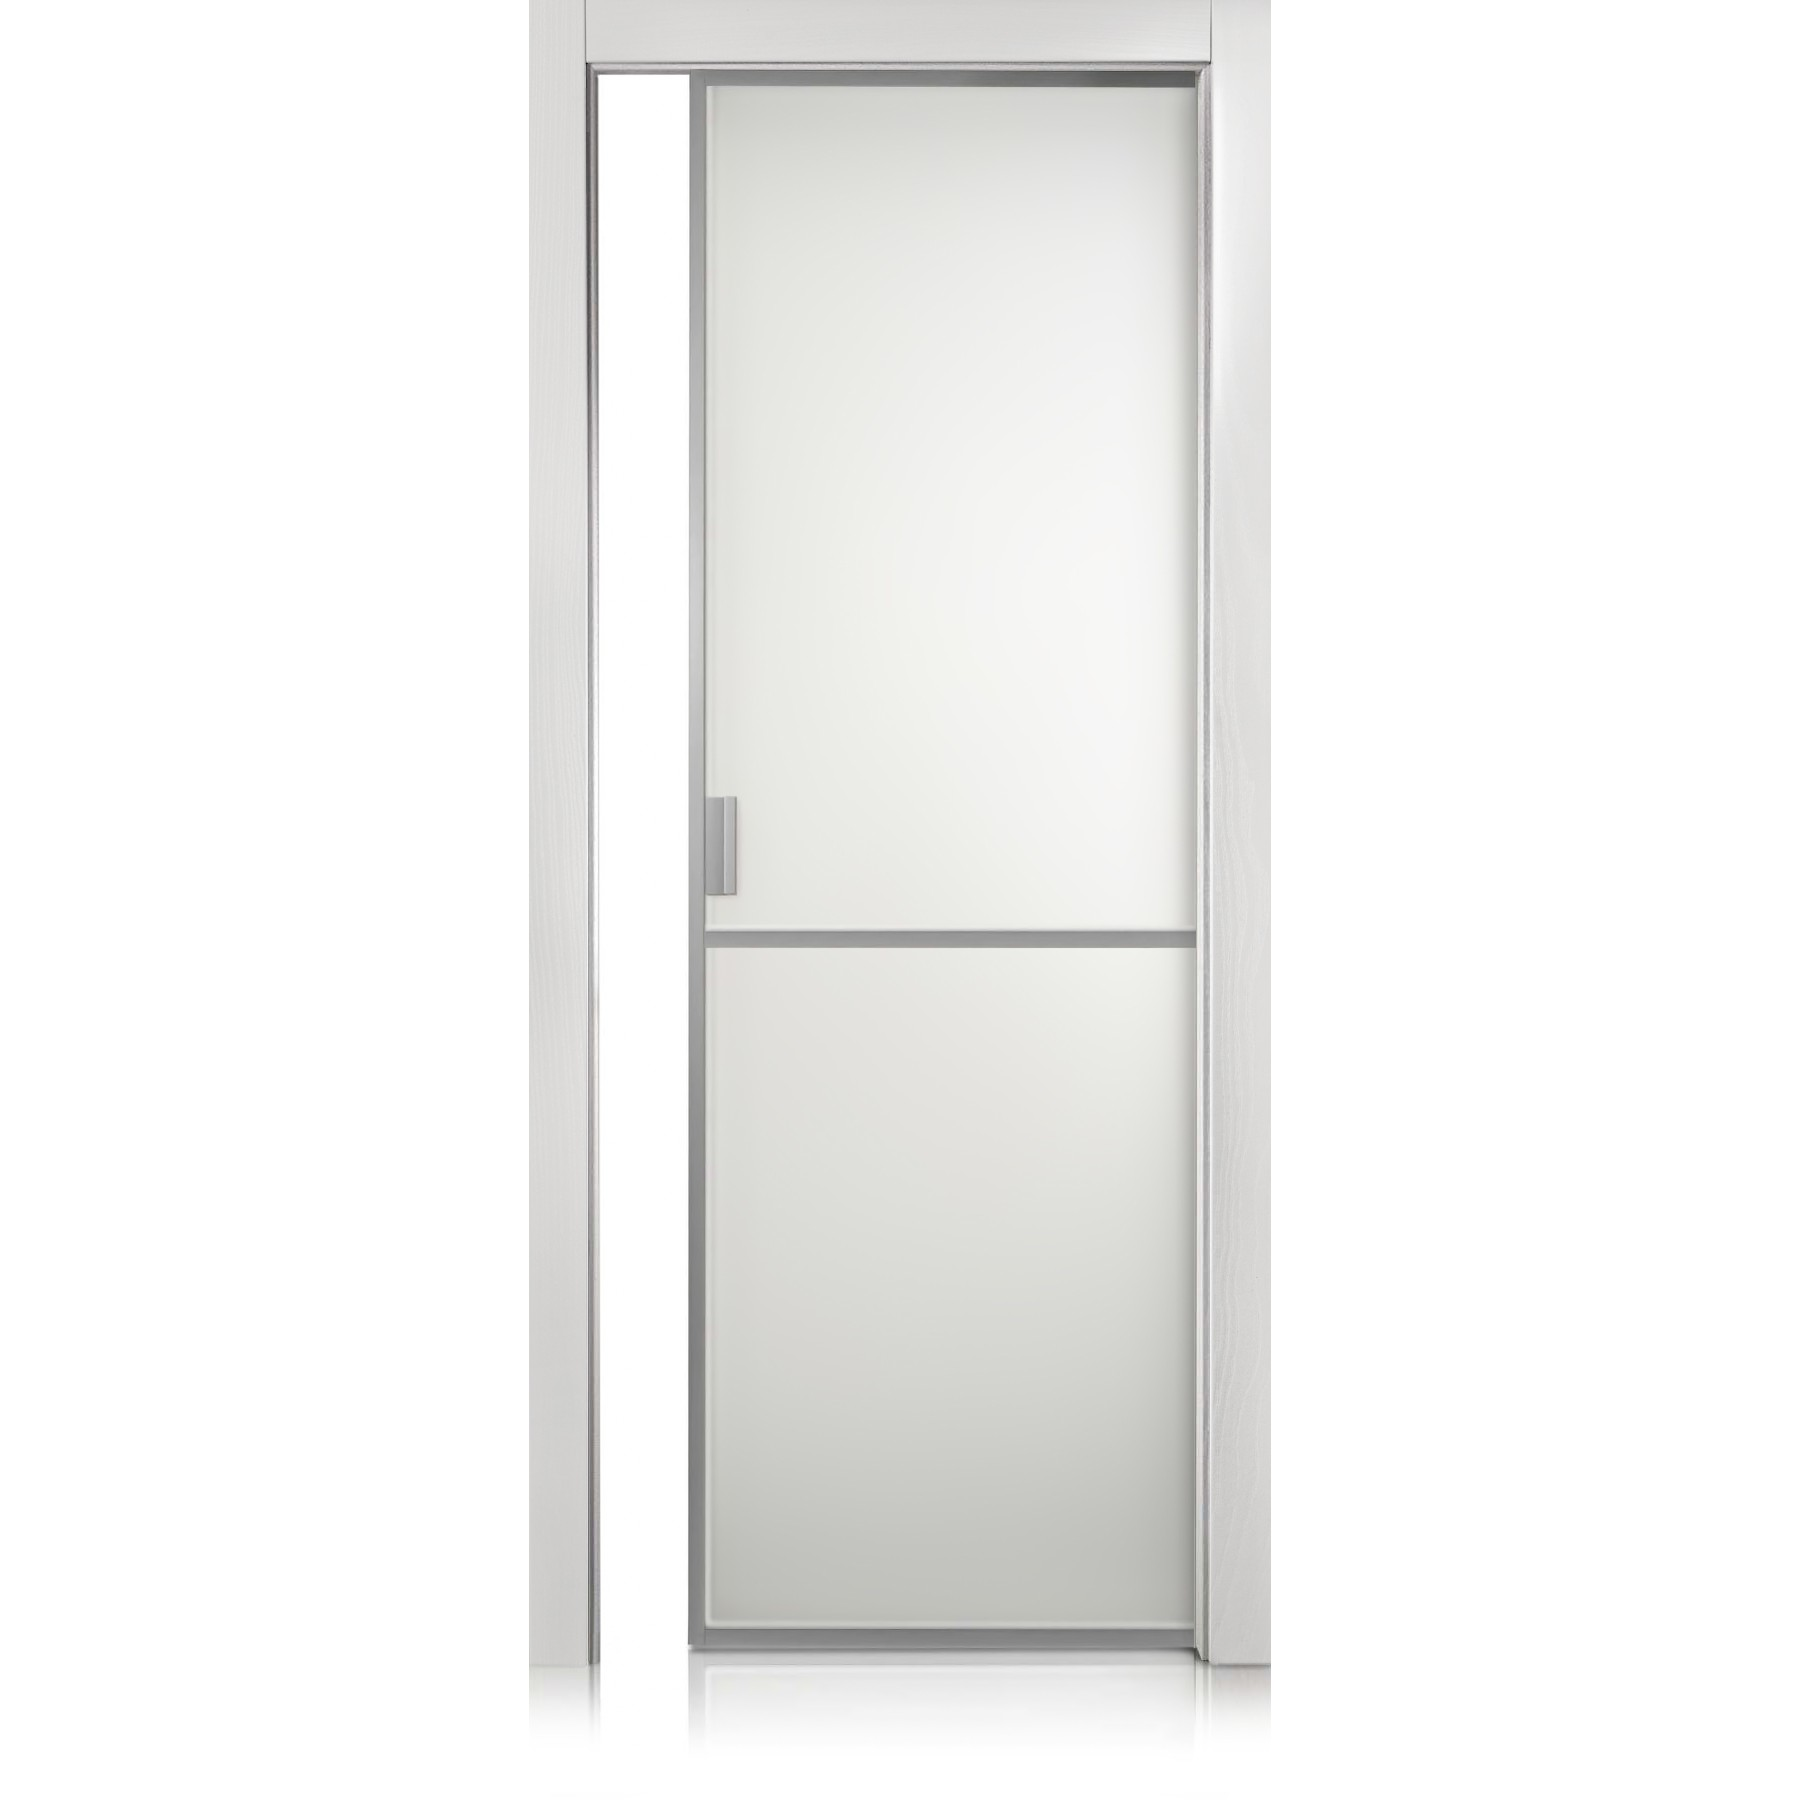 Cristal Frame / 1 Two-colour glass (available in different colours) door